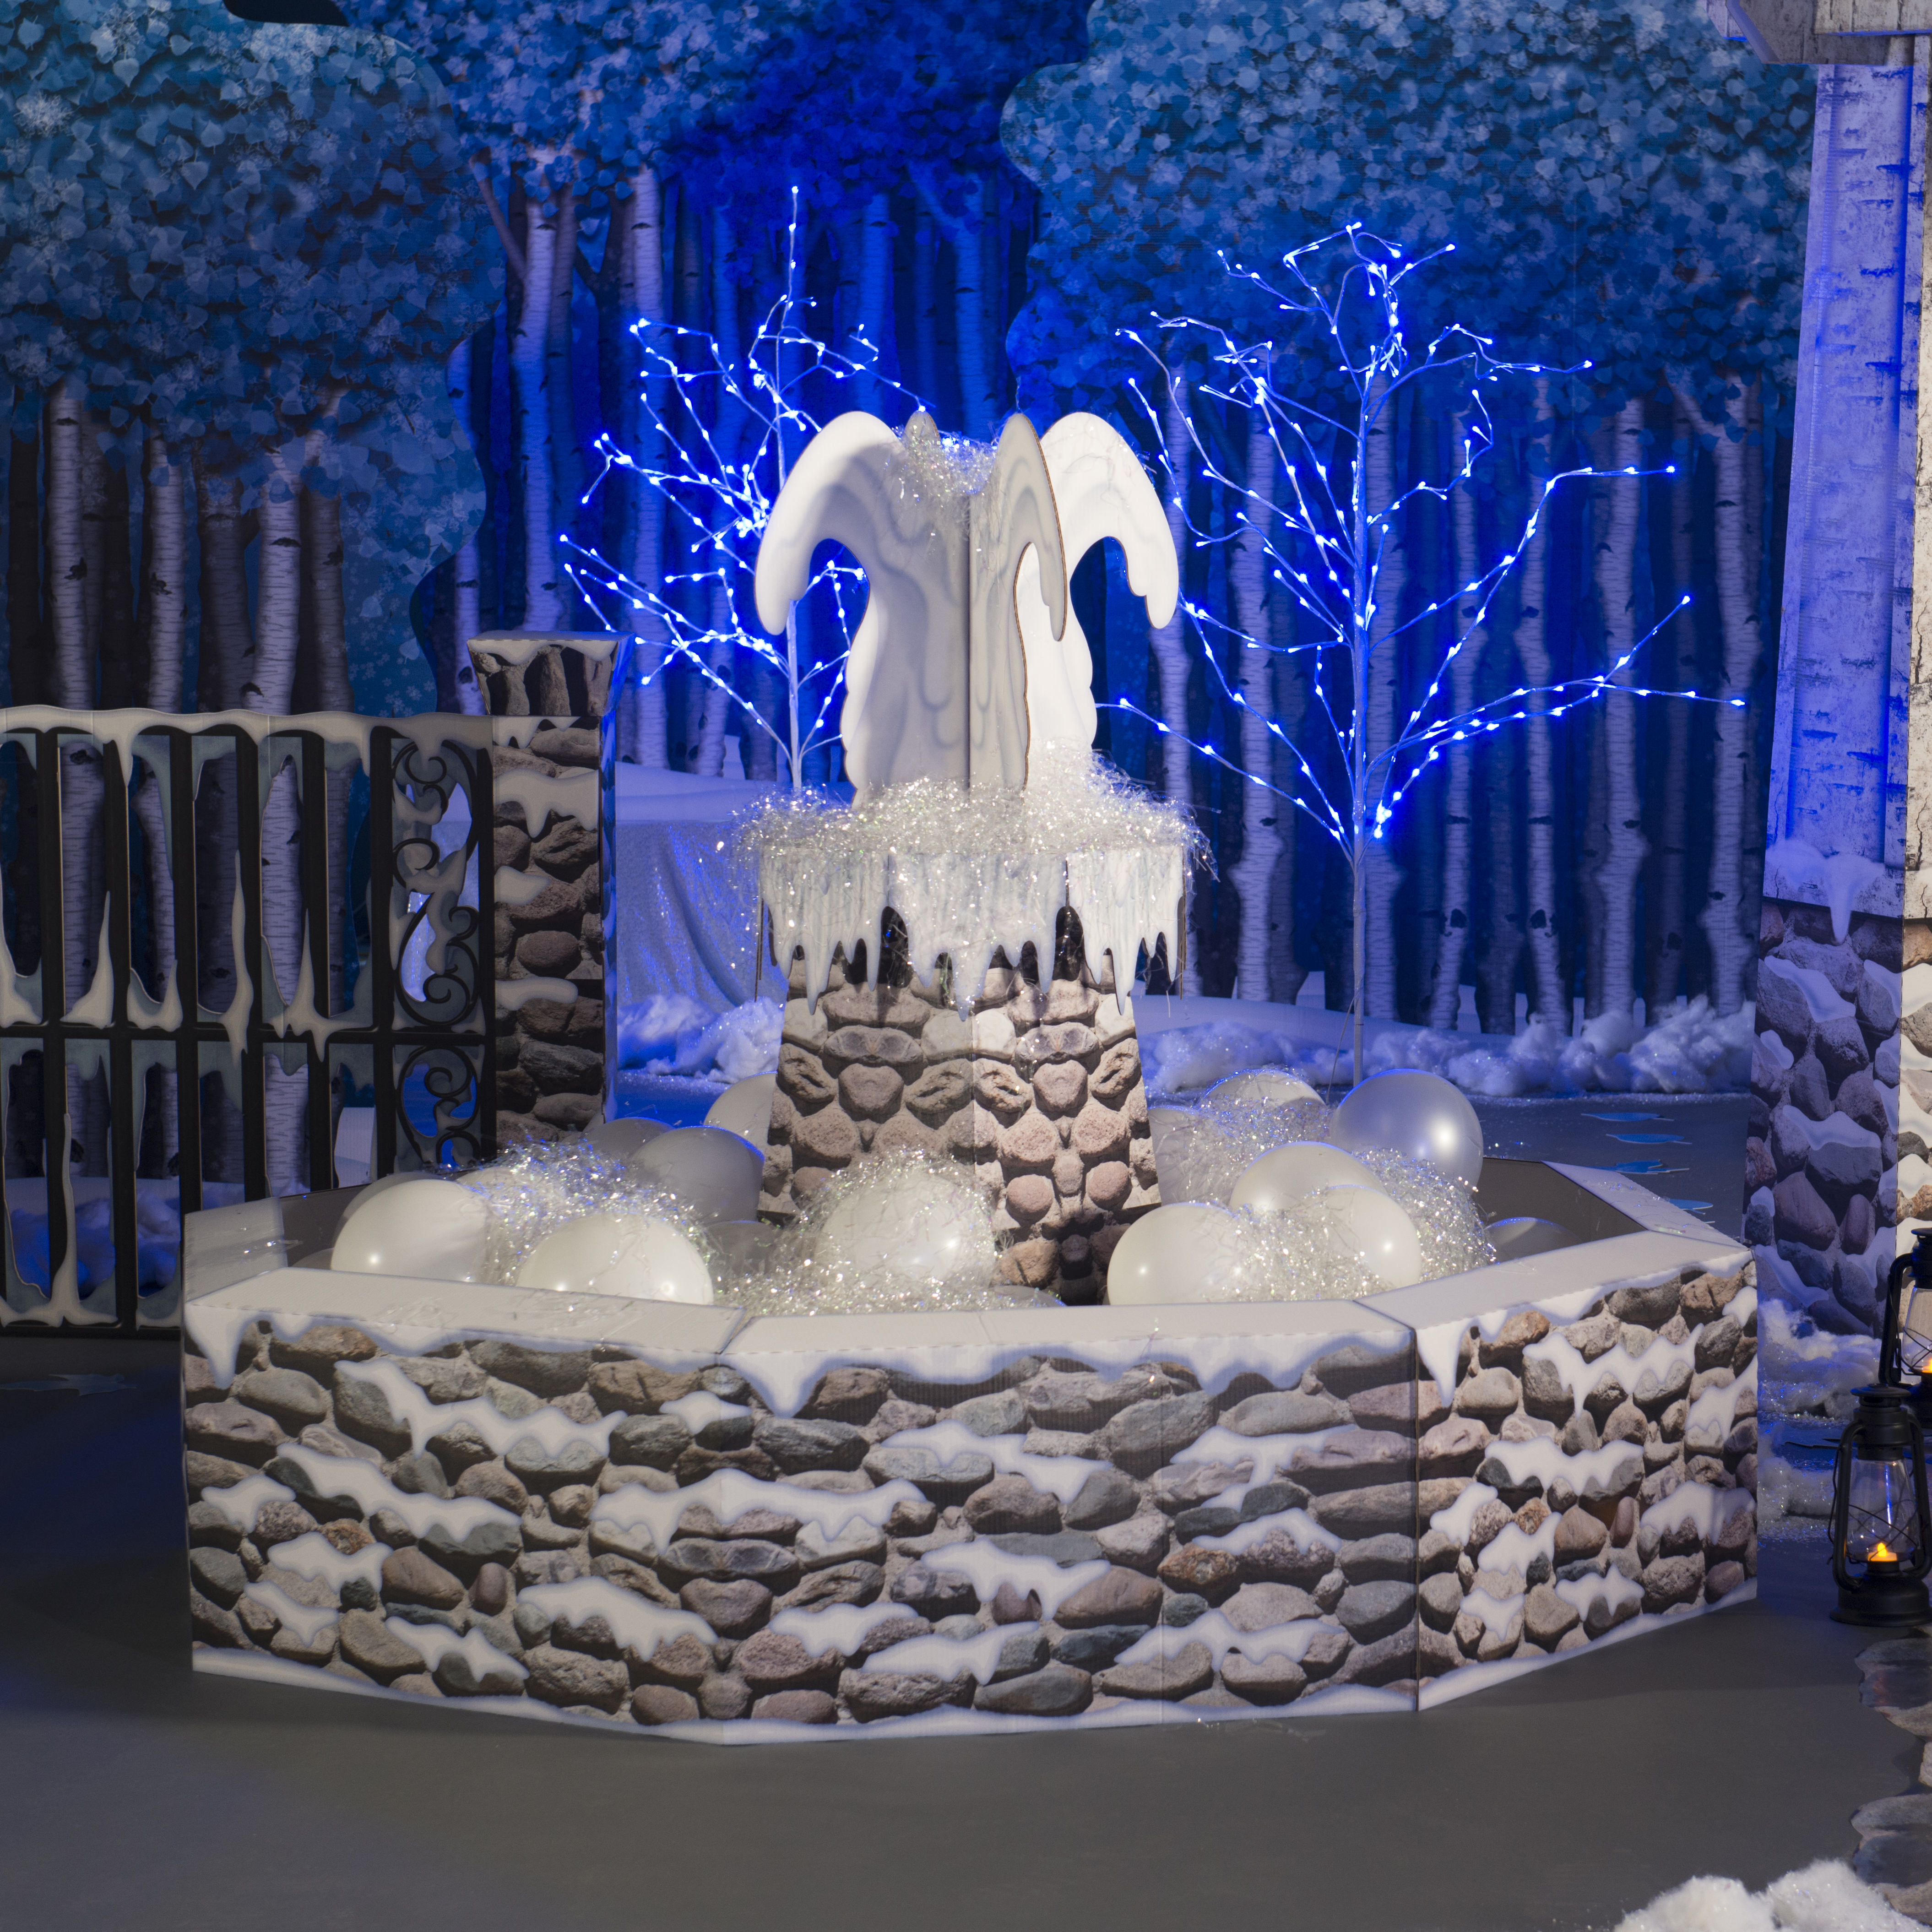 Winter Garden Party Ideas Part - 33: Use The Winter Garden Fountain To Create A Focal Point For Your Party.  White Latex Balloons And White Shred Add Sparkle And Charm While Creating  The Look Of ...